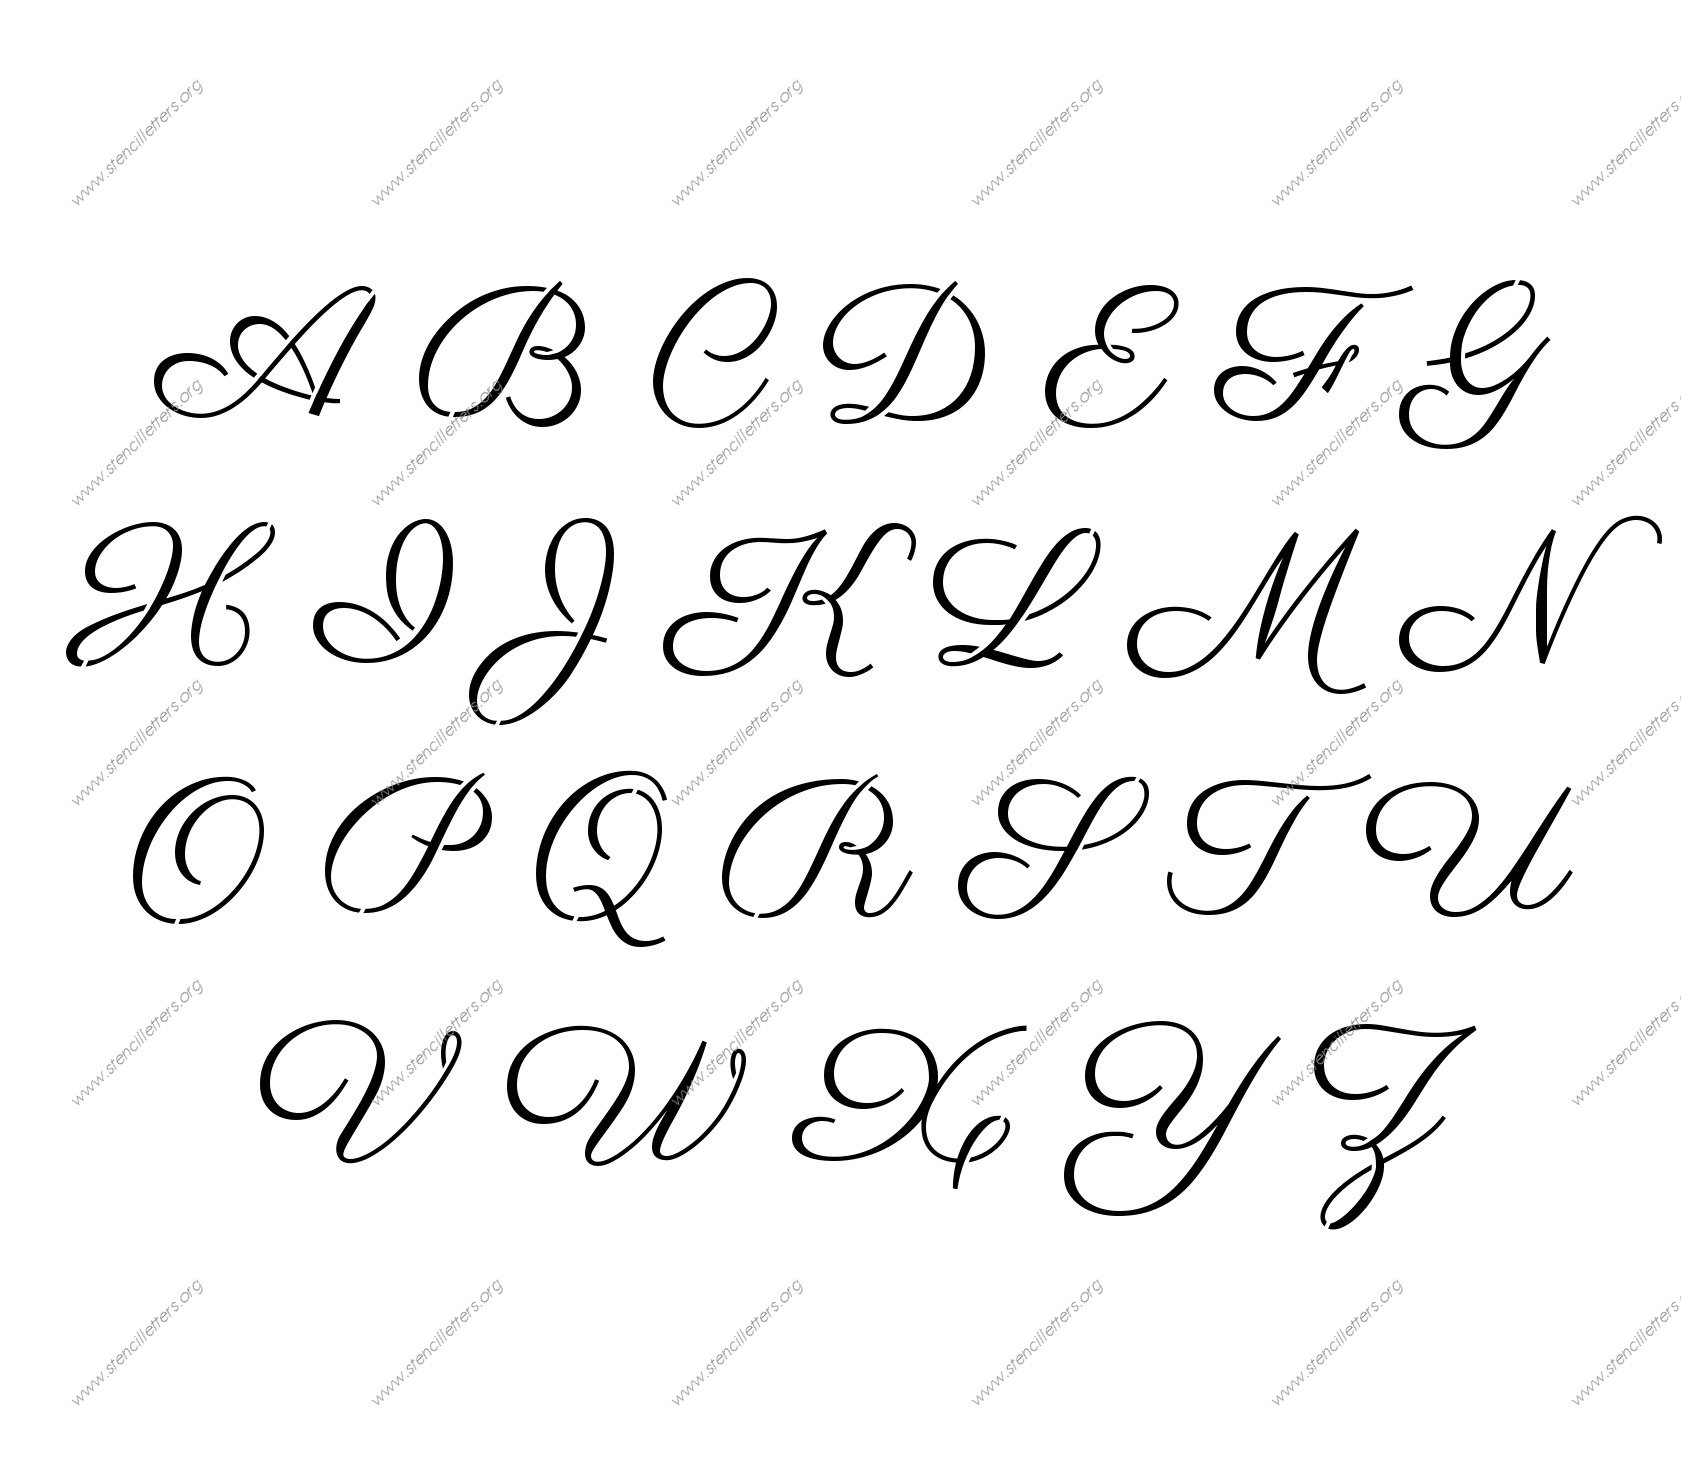 12 Free Printable Fonts Templates Images - Free Printable Letter - Free Printable Fonts